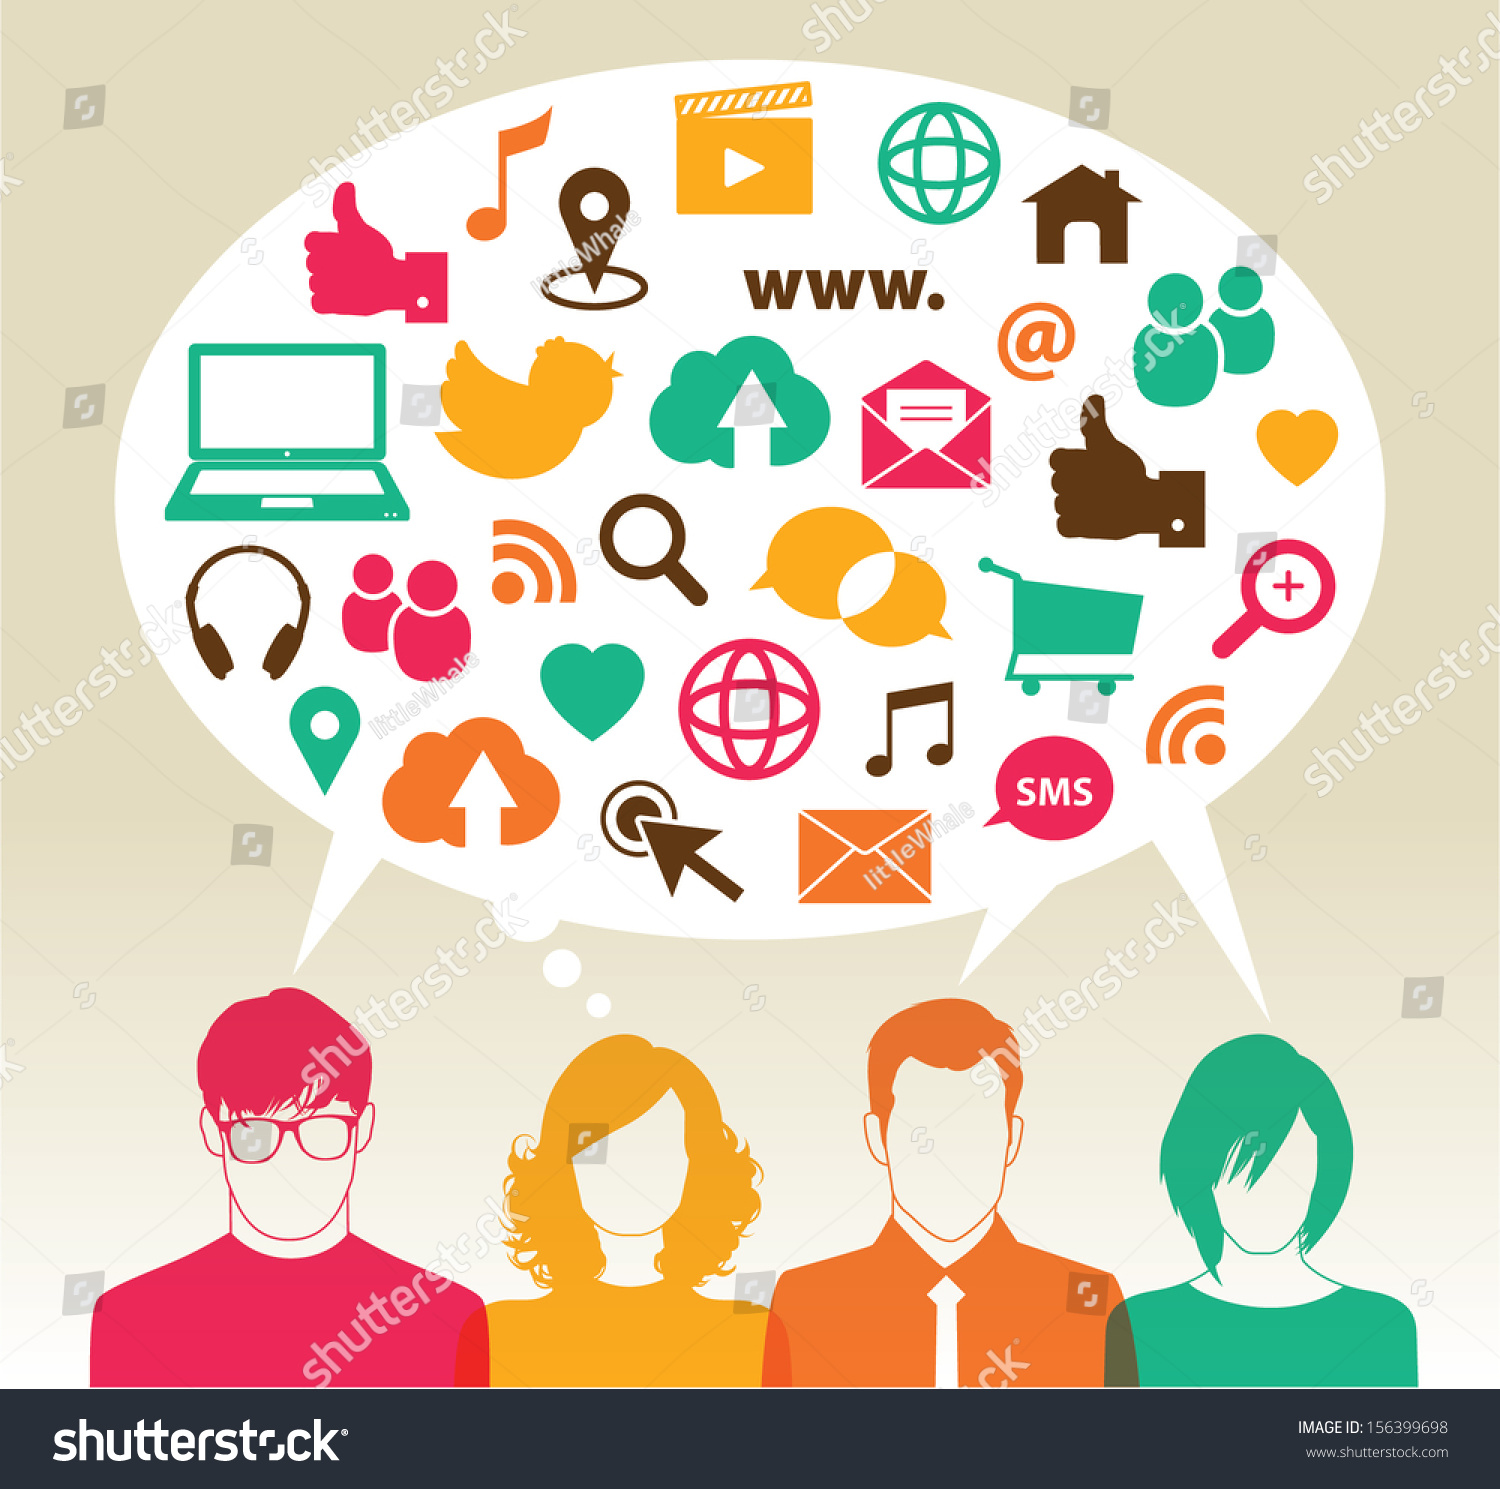 Social Media Icons Speech Bubbles Group Stock Vector ...